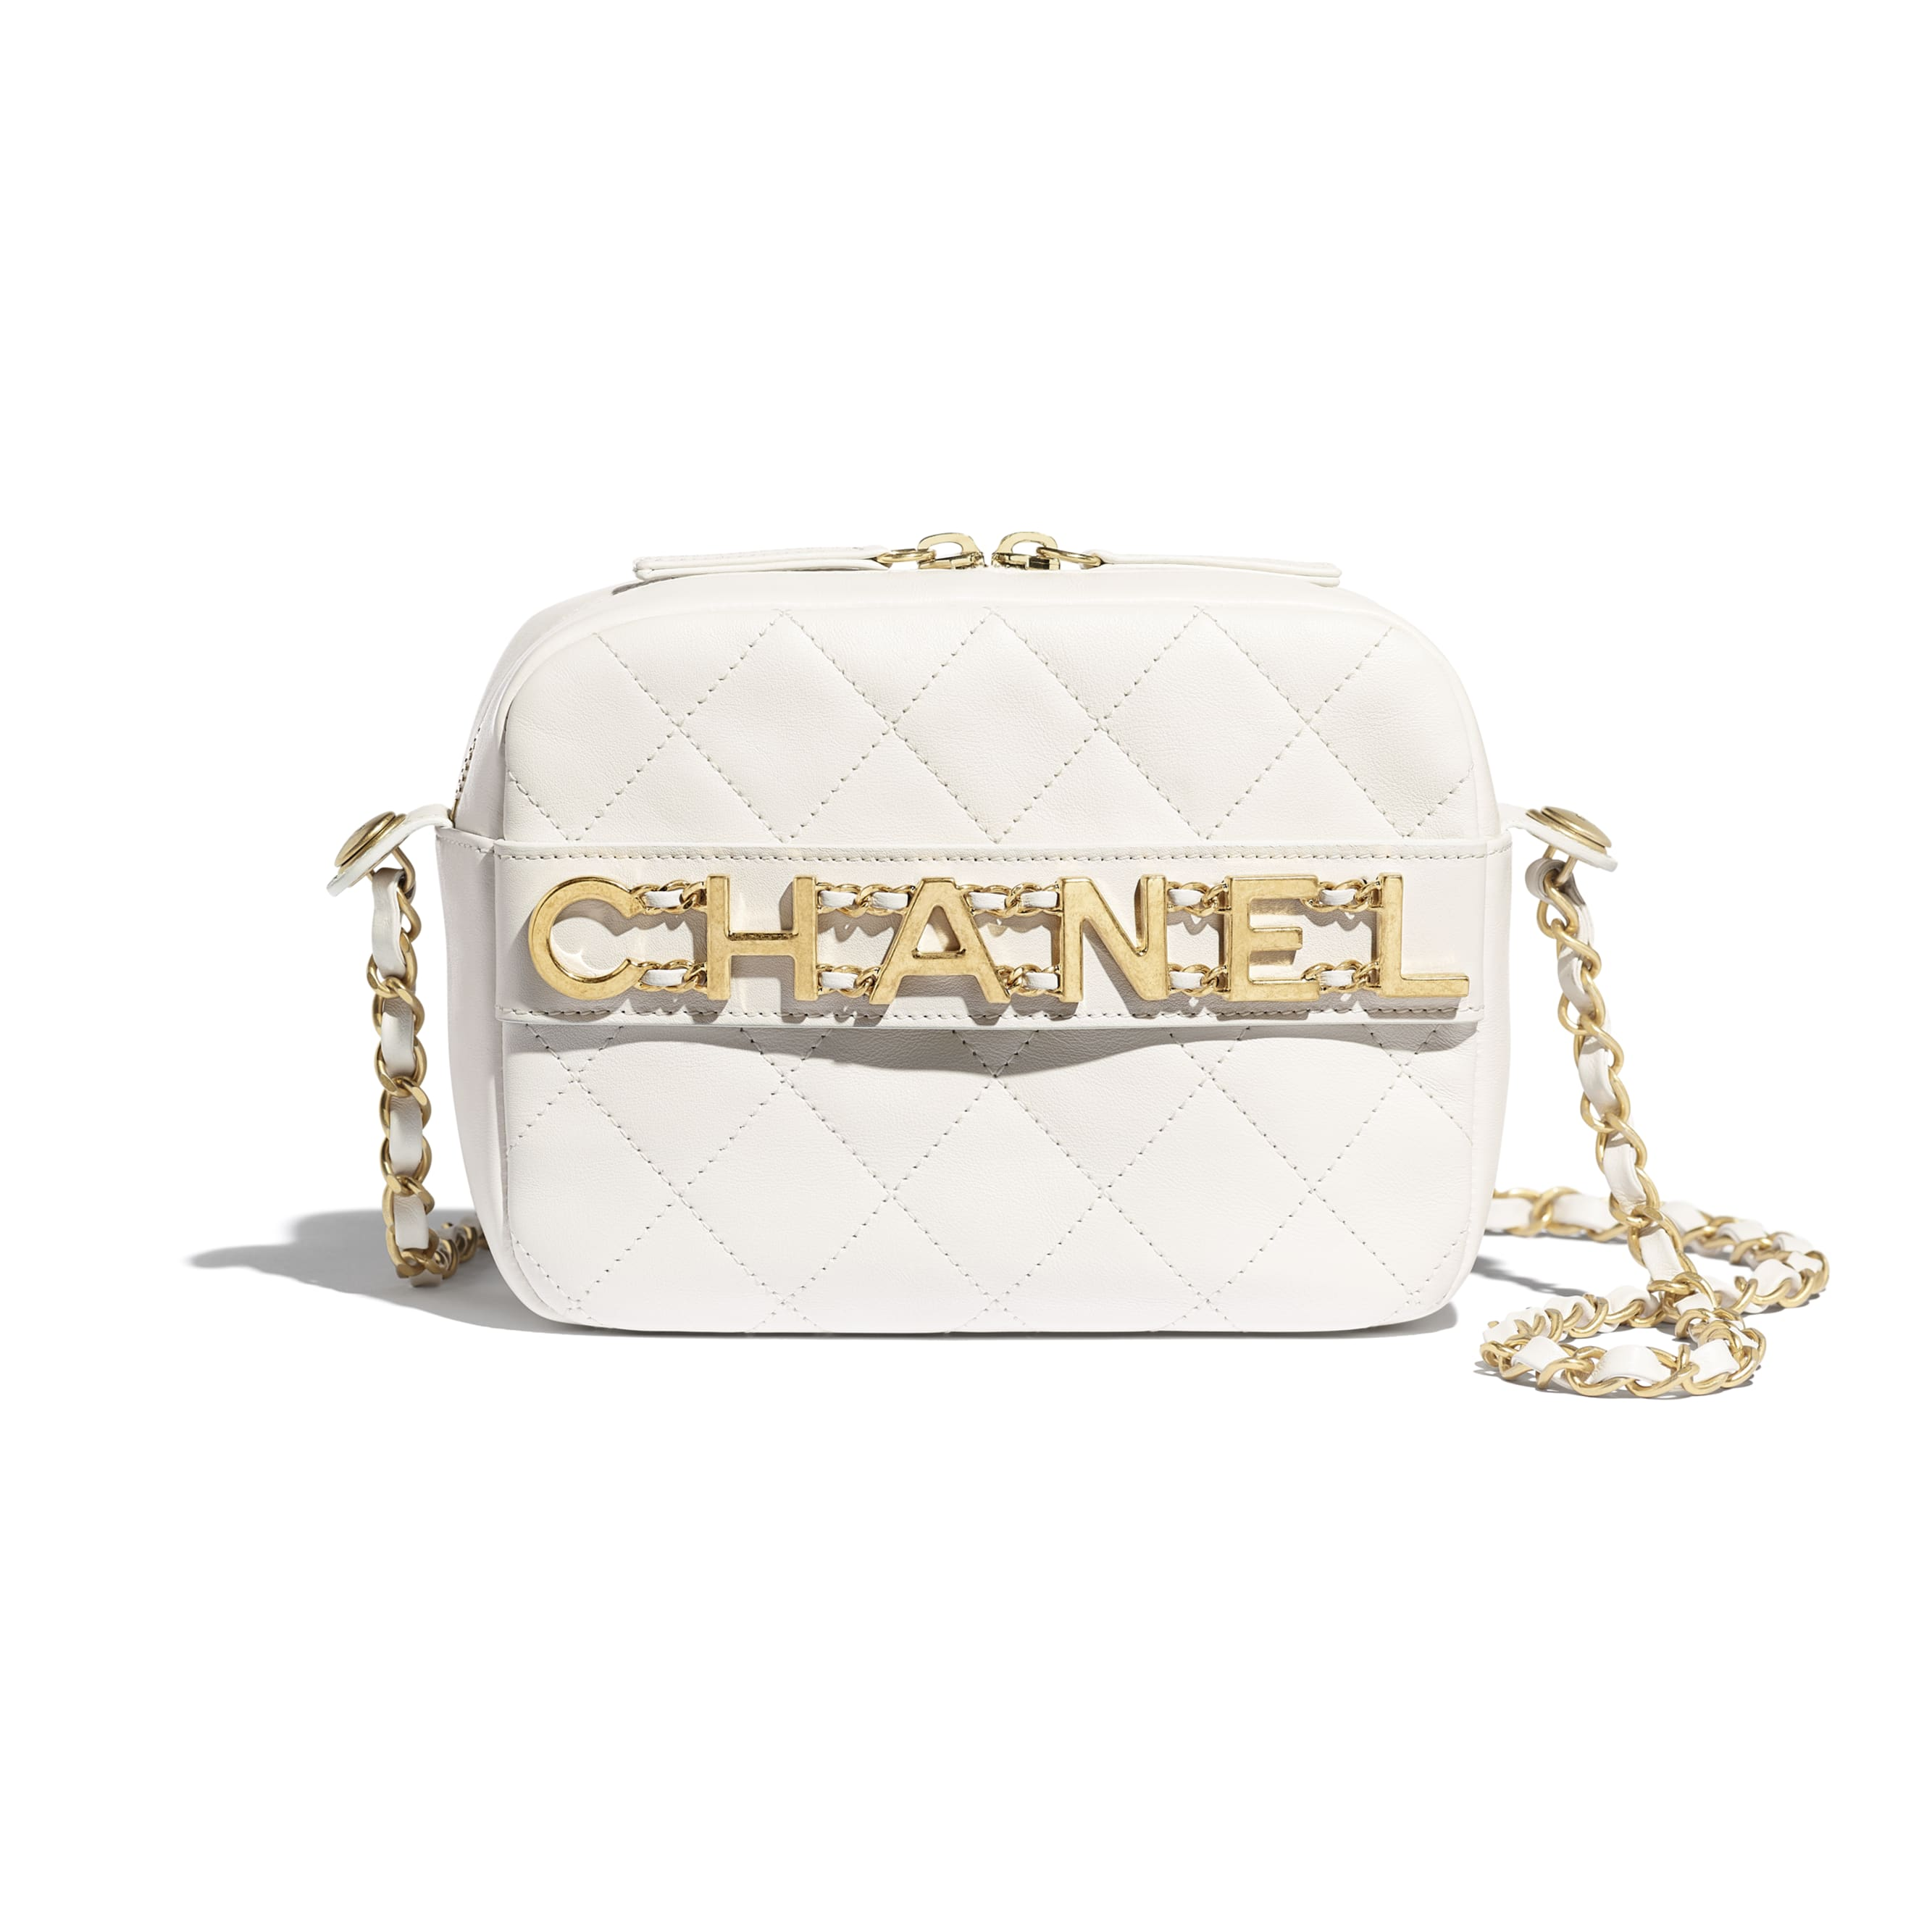 Camera Case - White - Calfskin & Gold-Tone Metal - CHANEL - Default view - see standard sized version